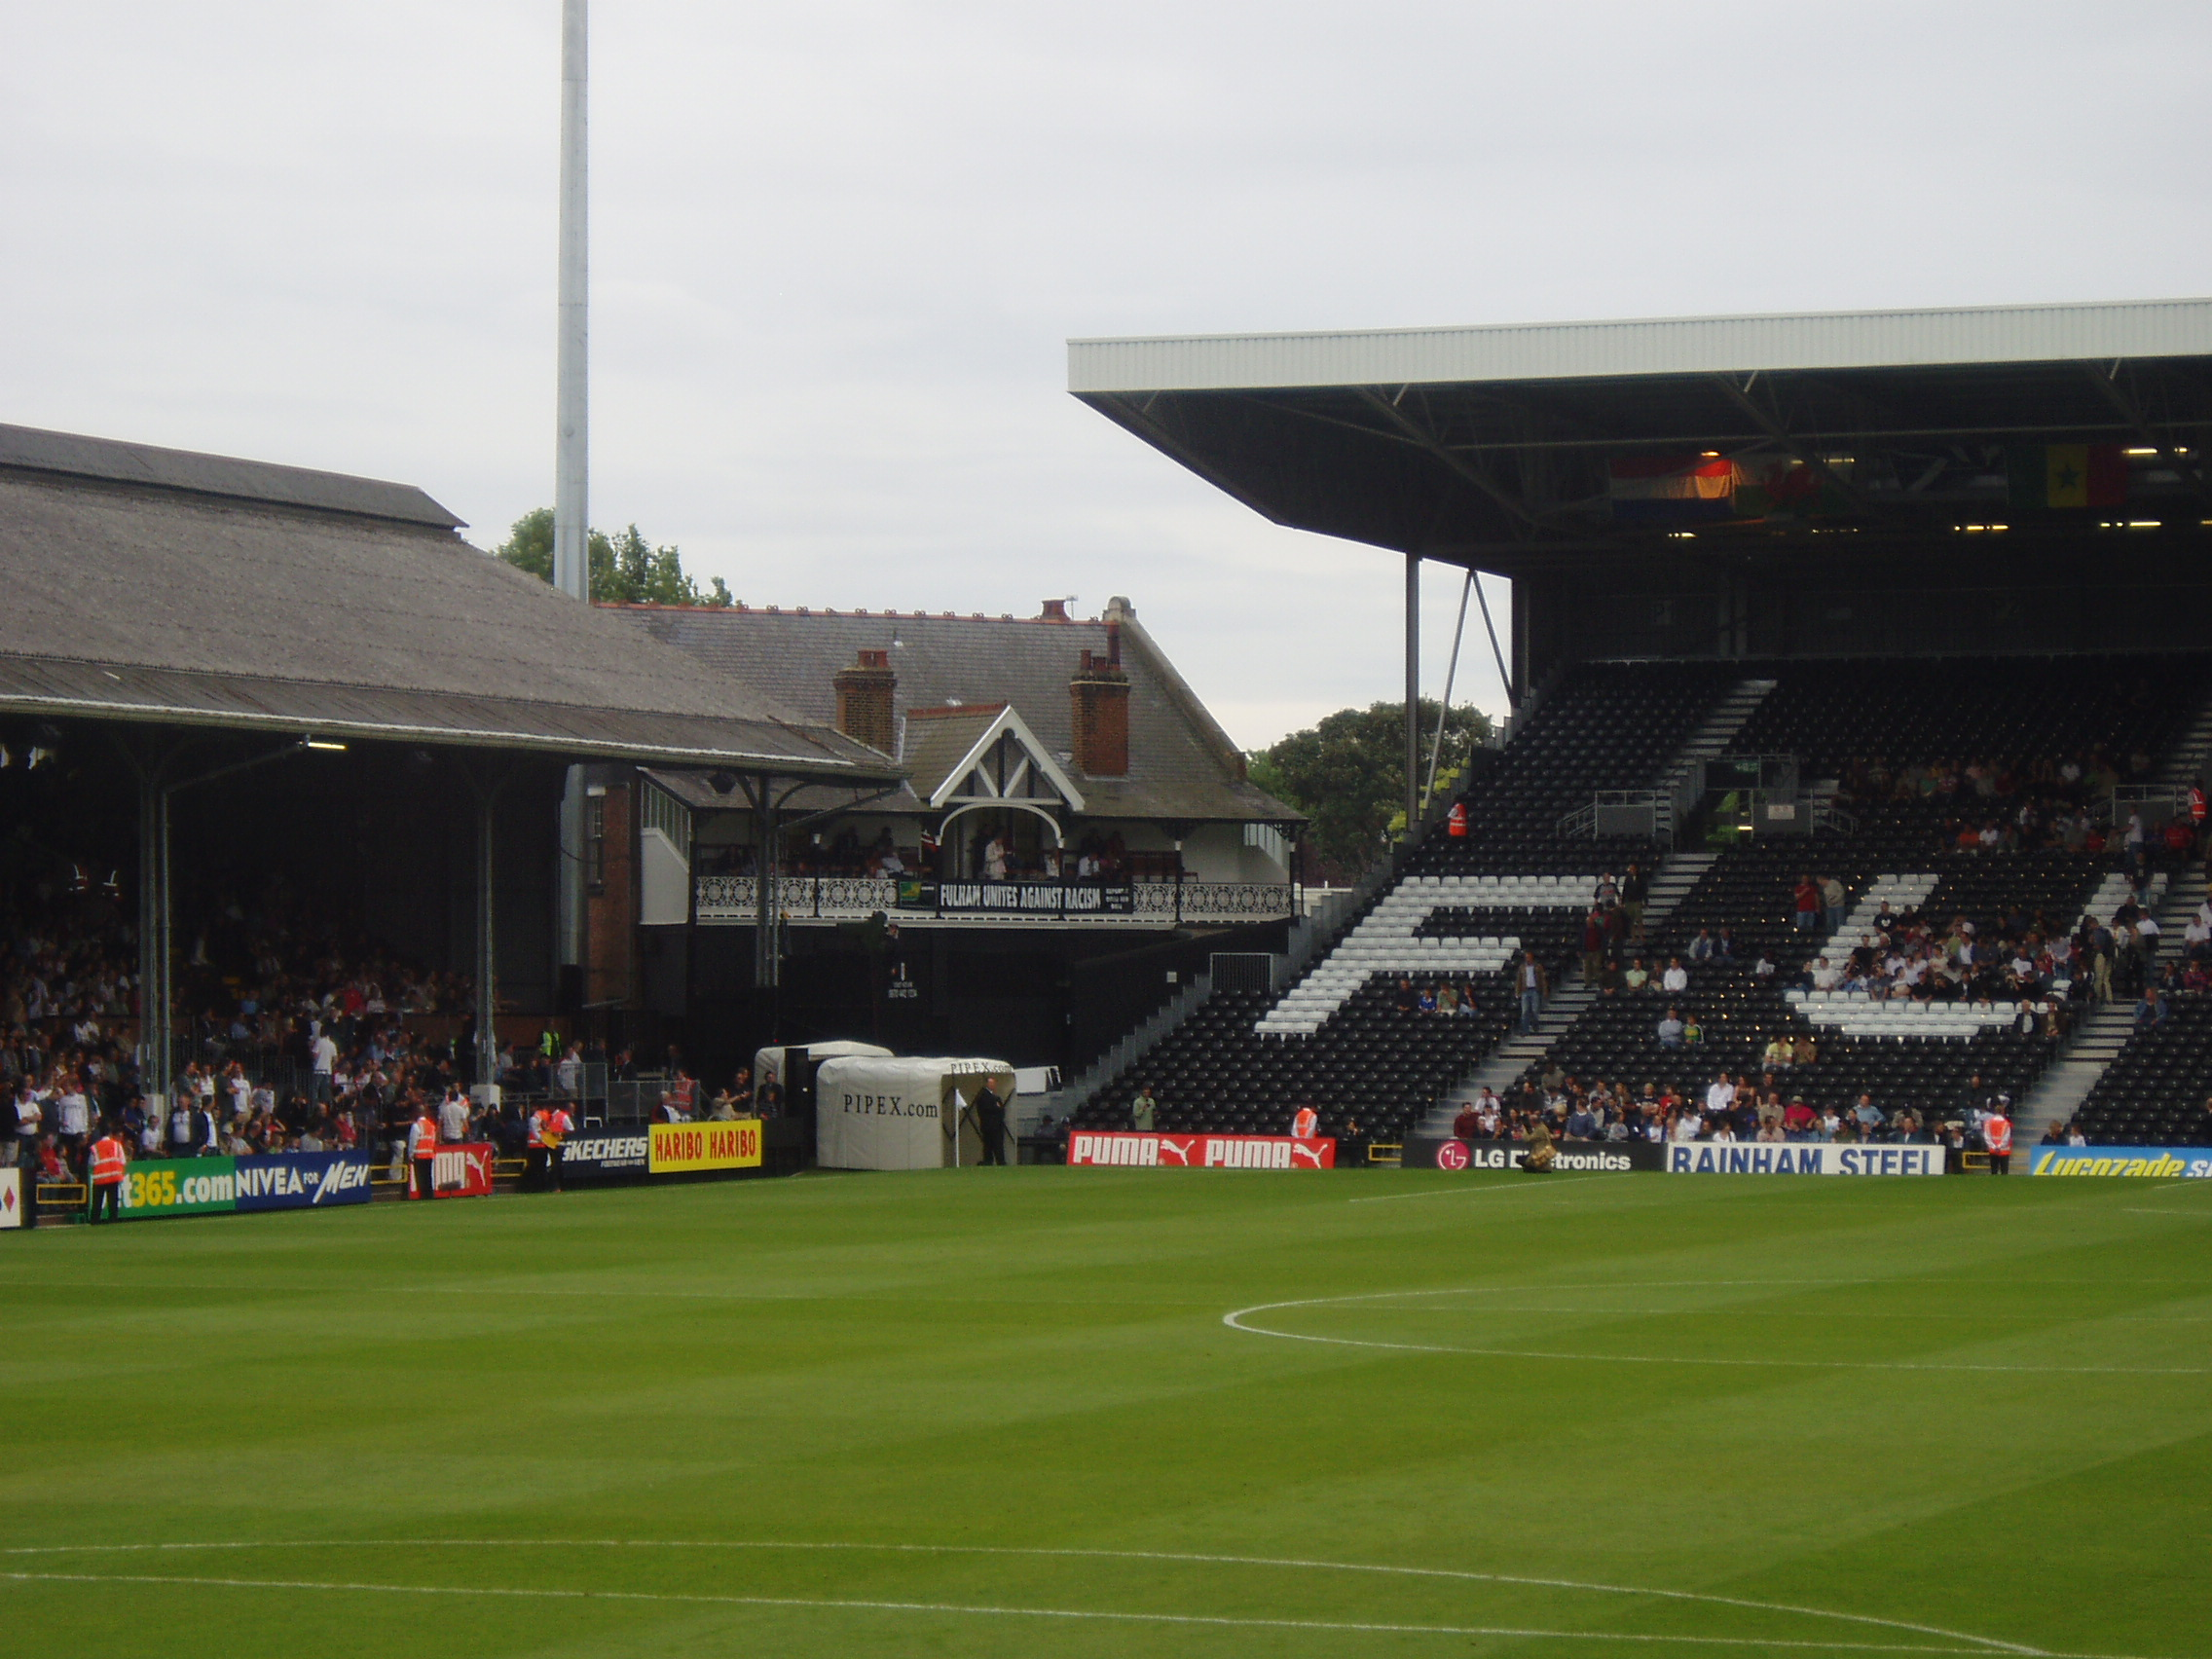 File:Craven Cottage.JPG - Wikimedia Commons